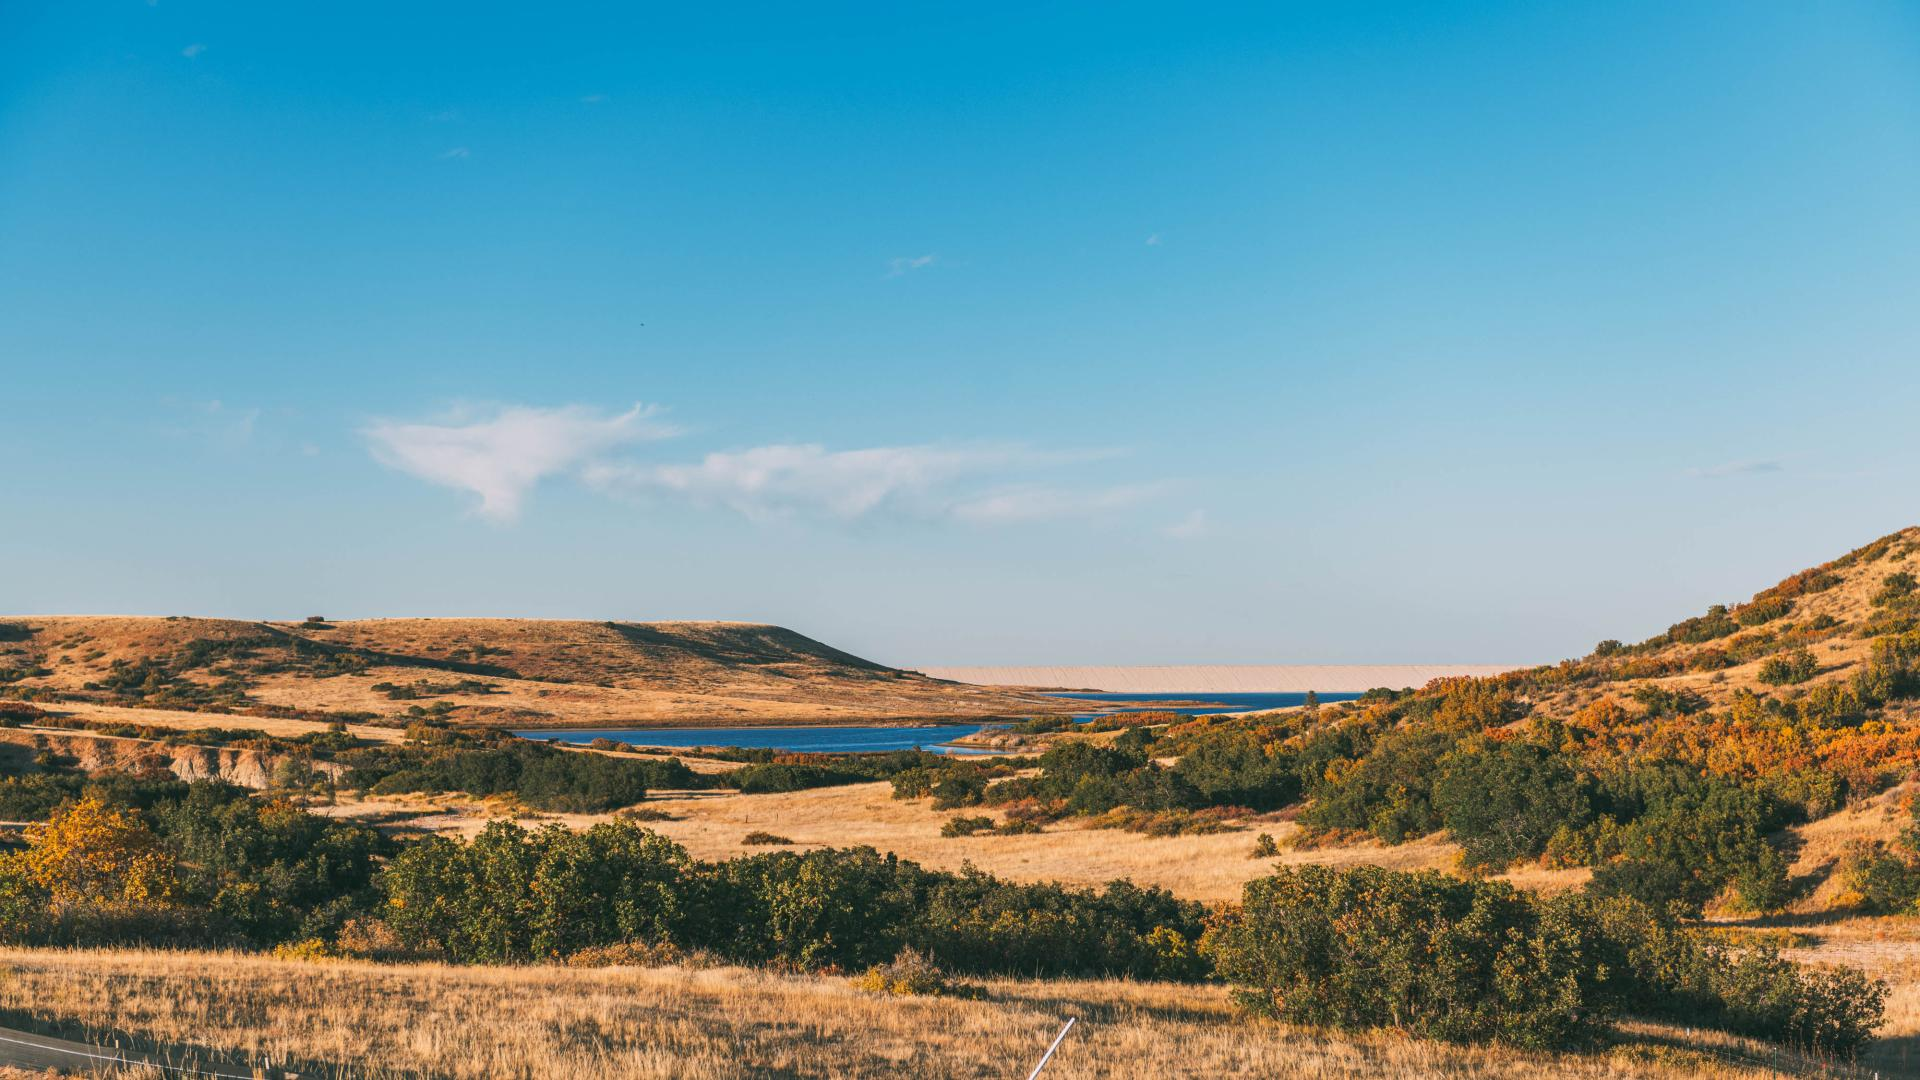 Toll Brothers at The Canyons has views of the Reuter-Hess Reservoir